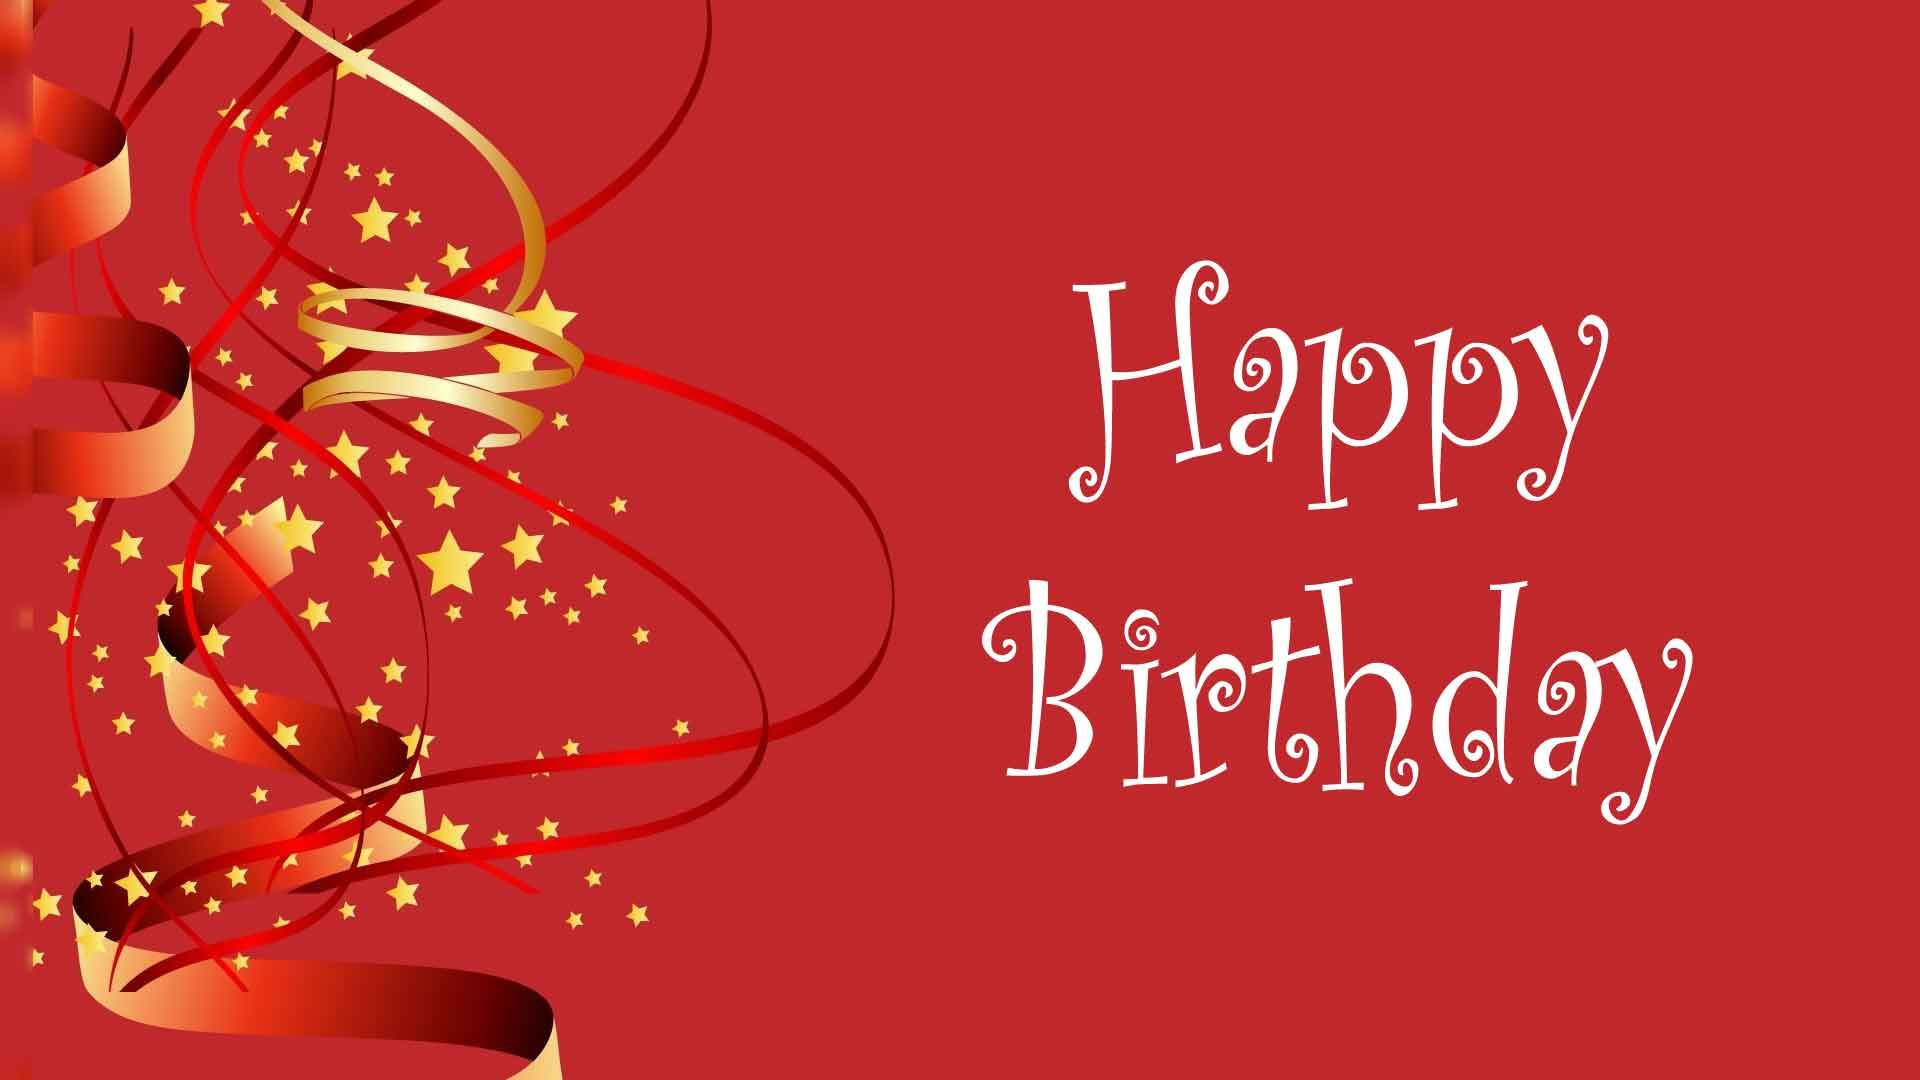 Birthday Background Vectors Photos and PSD files Free